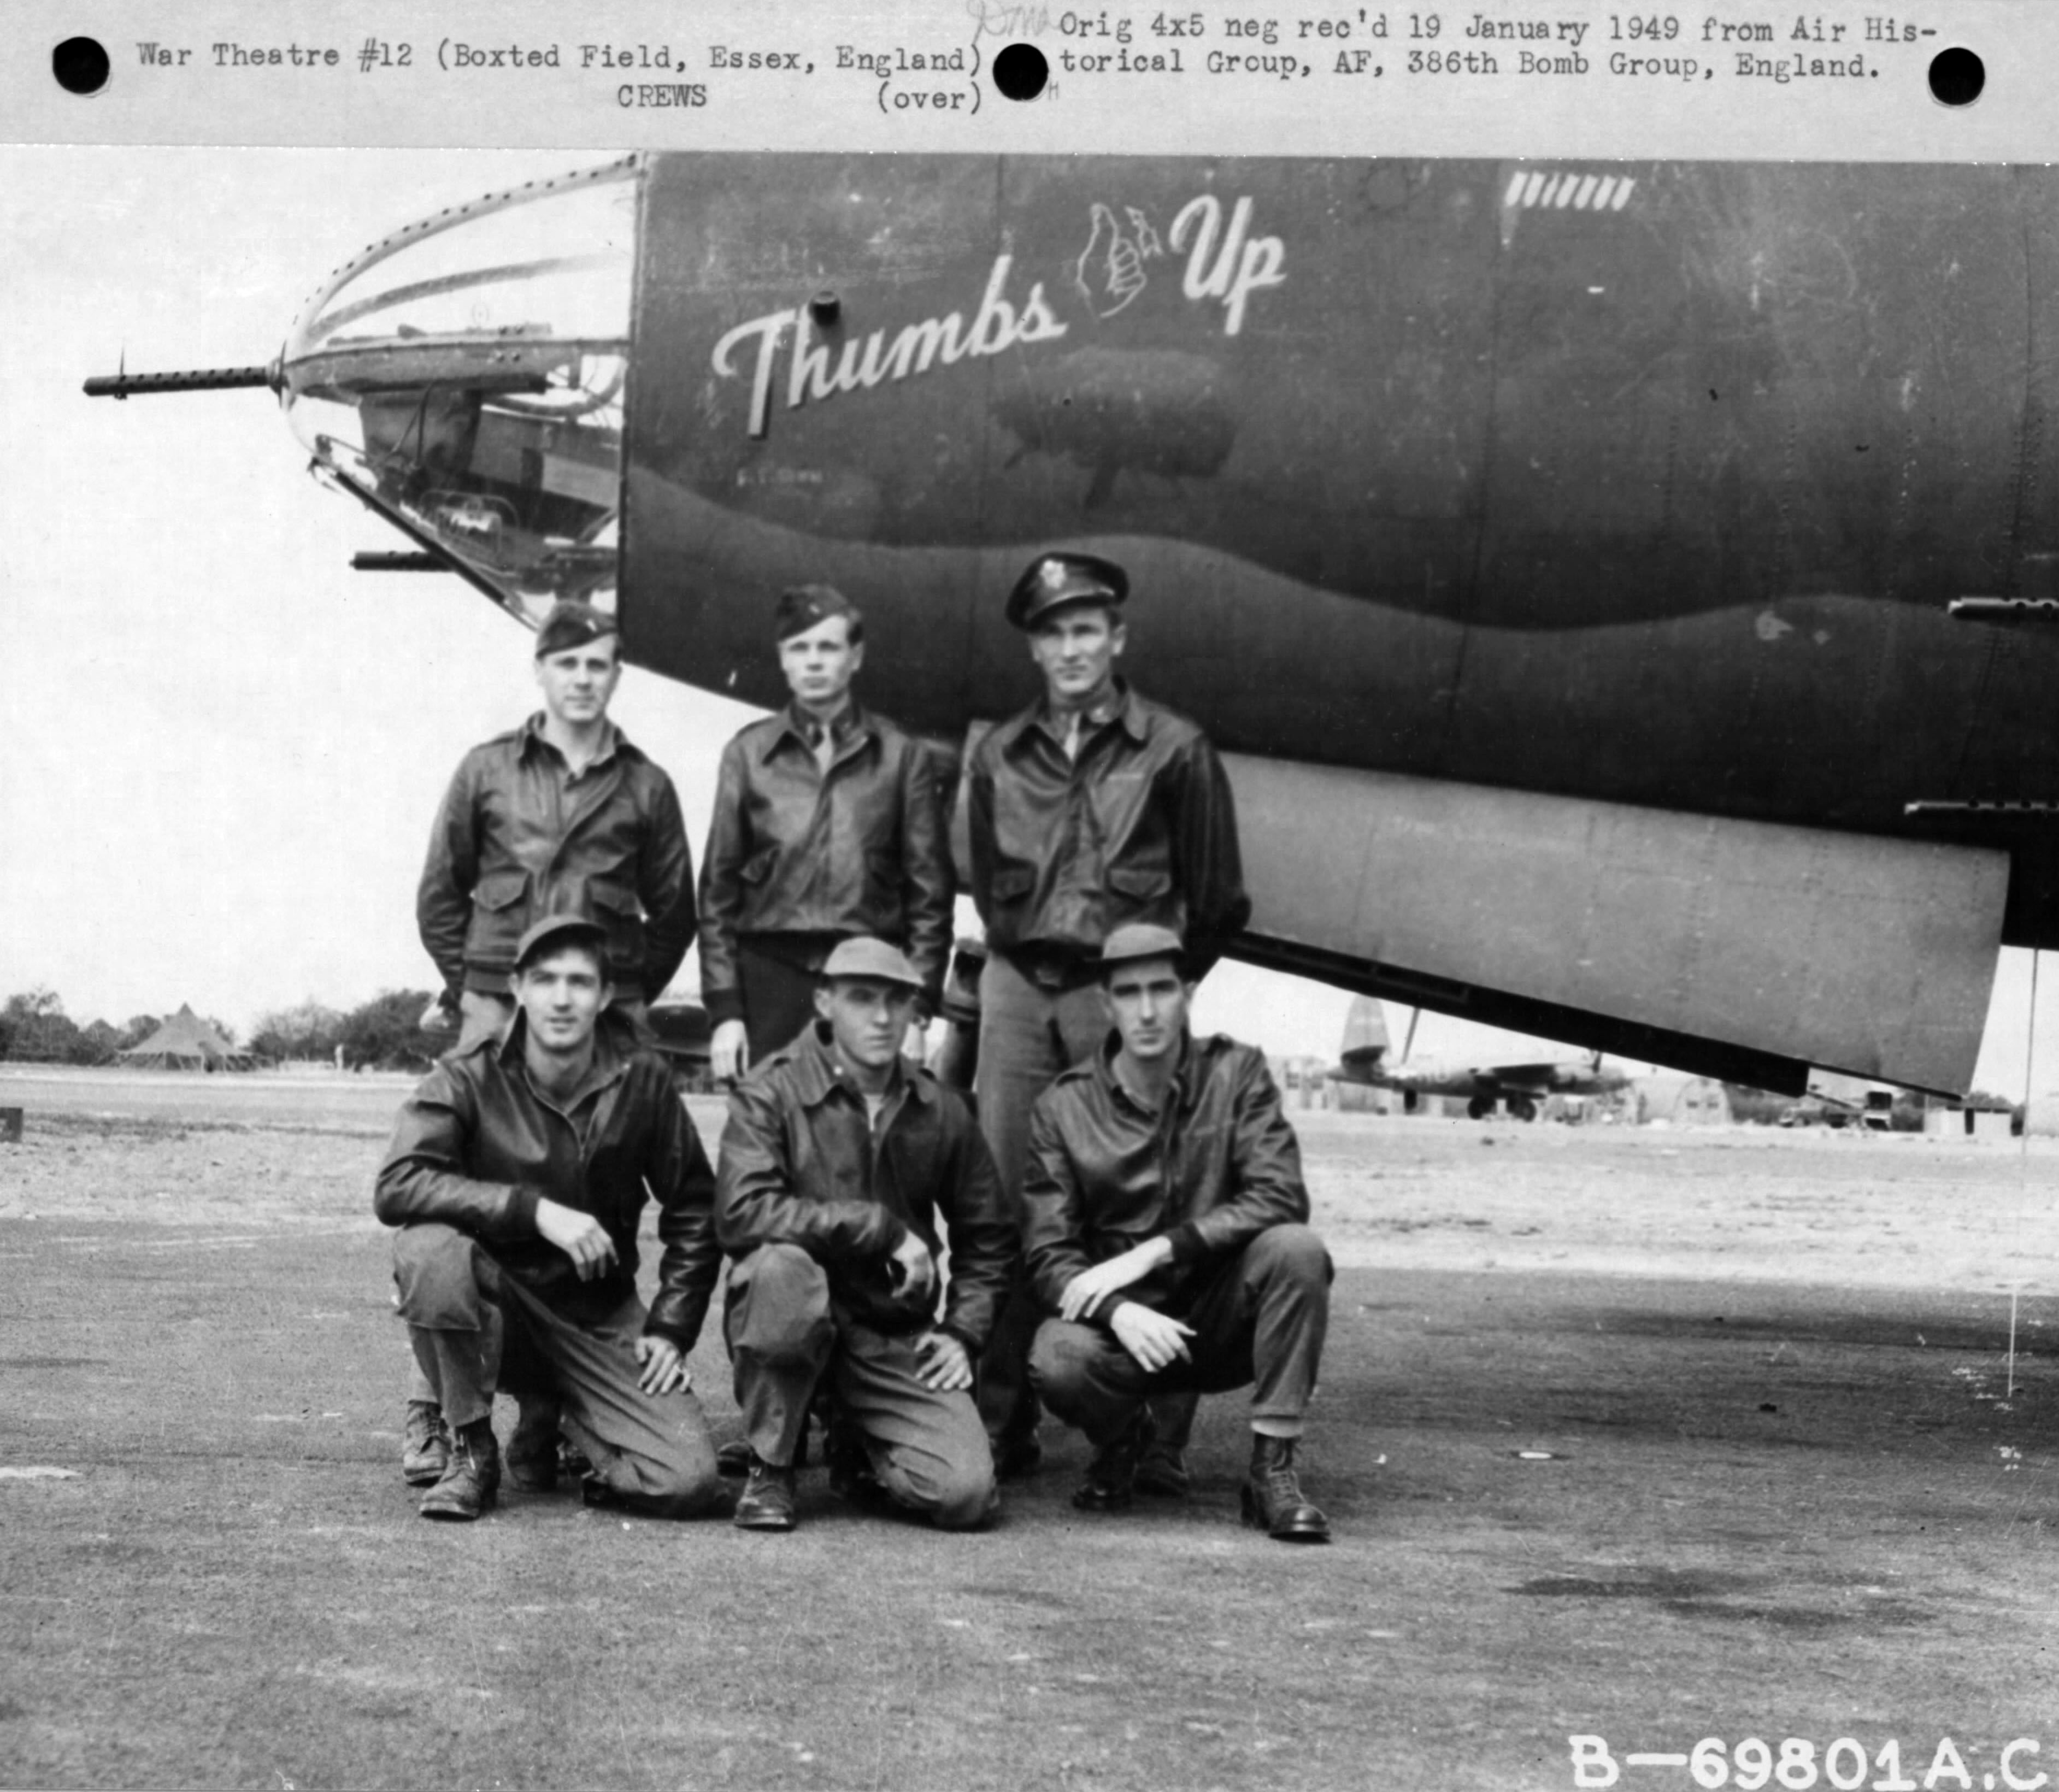 USAAF 41 31621 B 26B Marauder 386BG554BS RUP Thumbs Up crew England 01